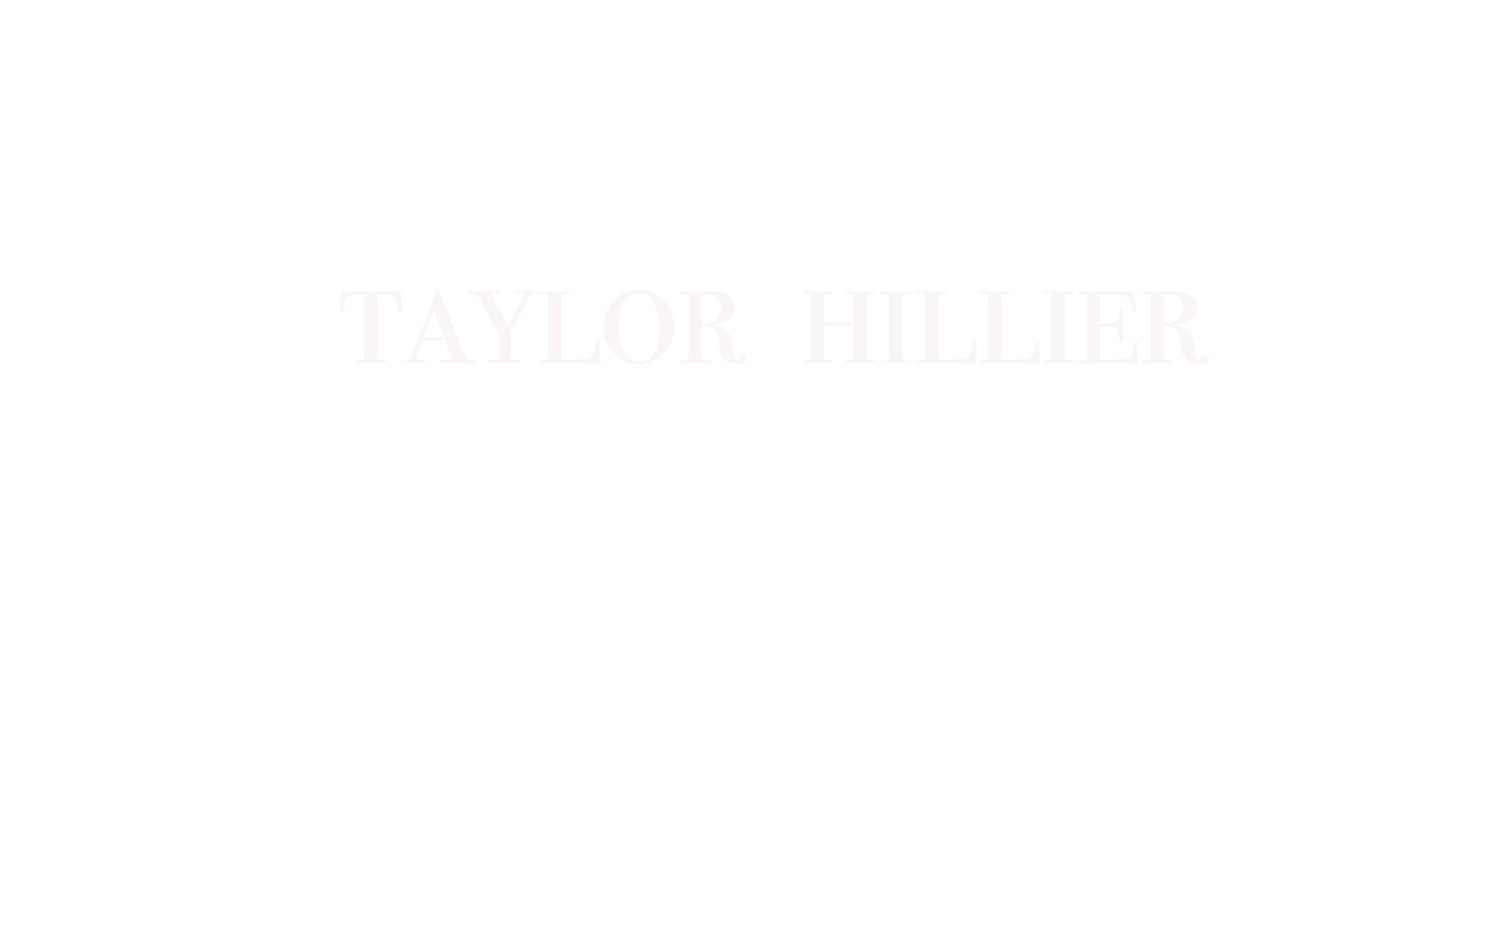 Taylor Hillier Photography